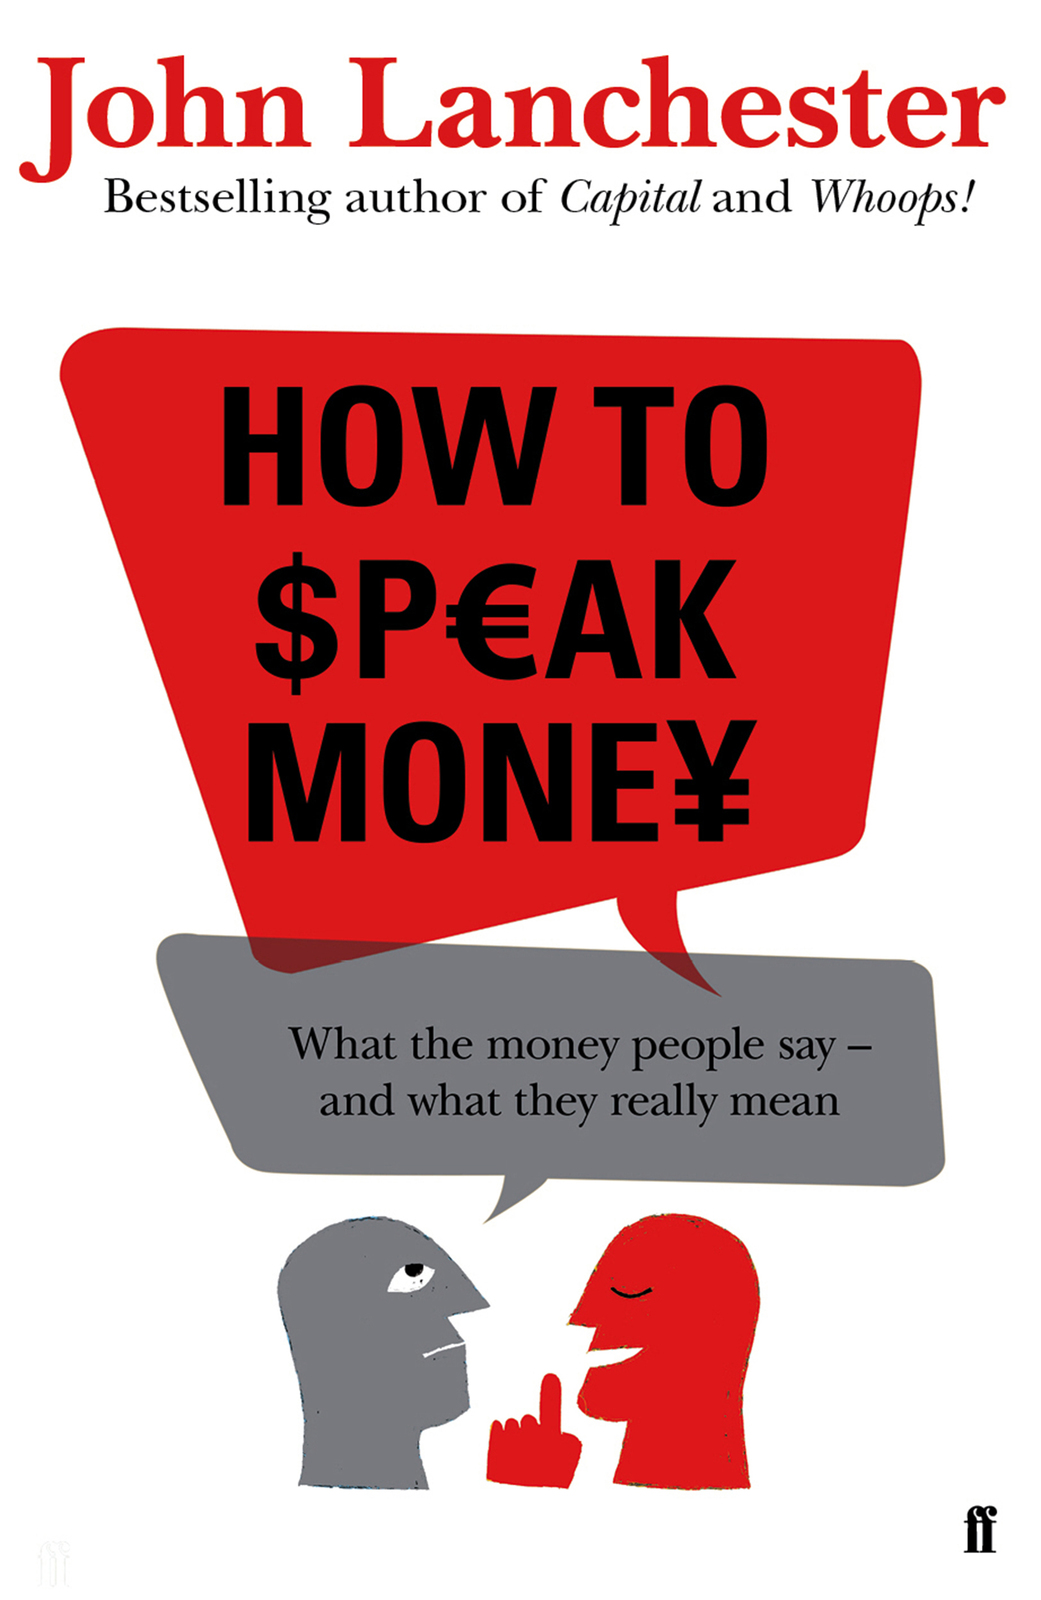 How to Speak Money by John Lanchester image